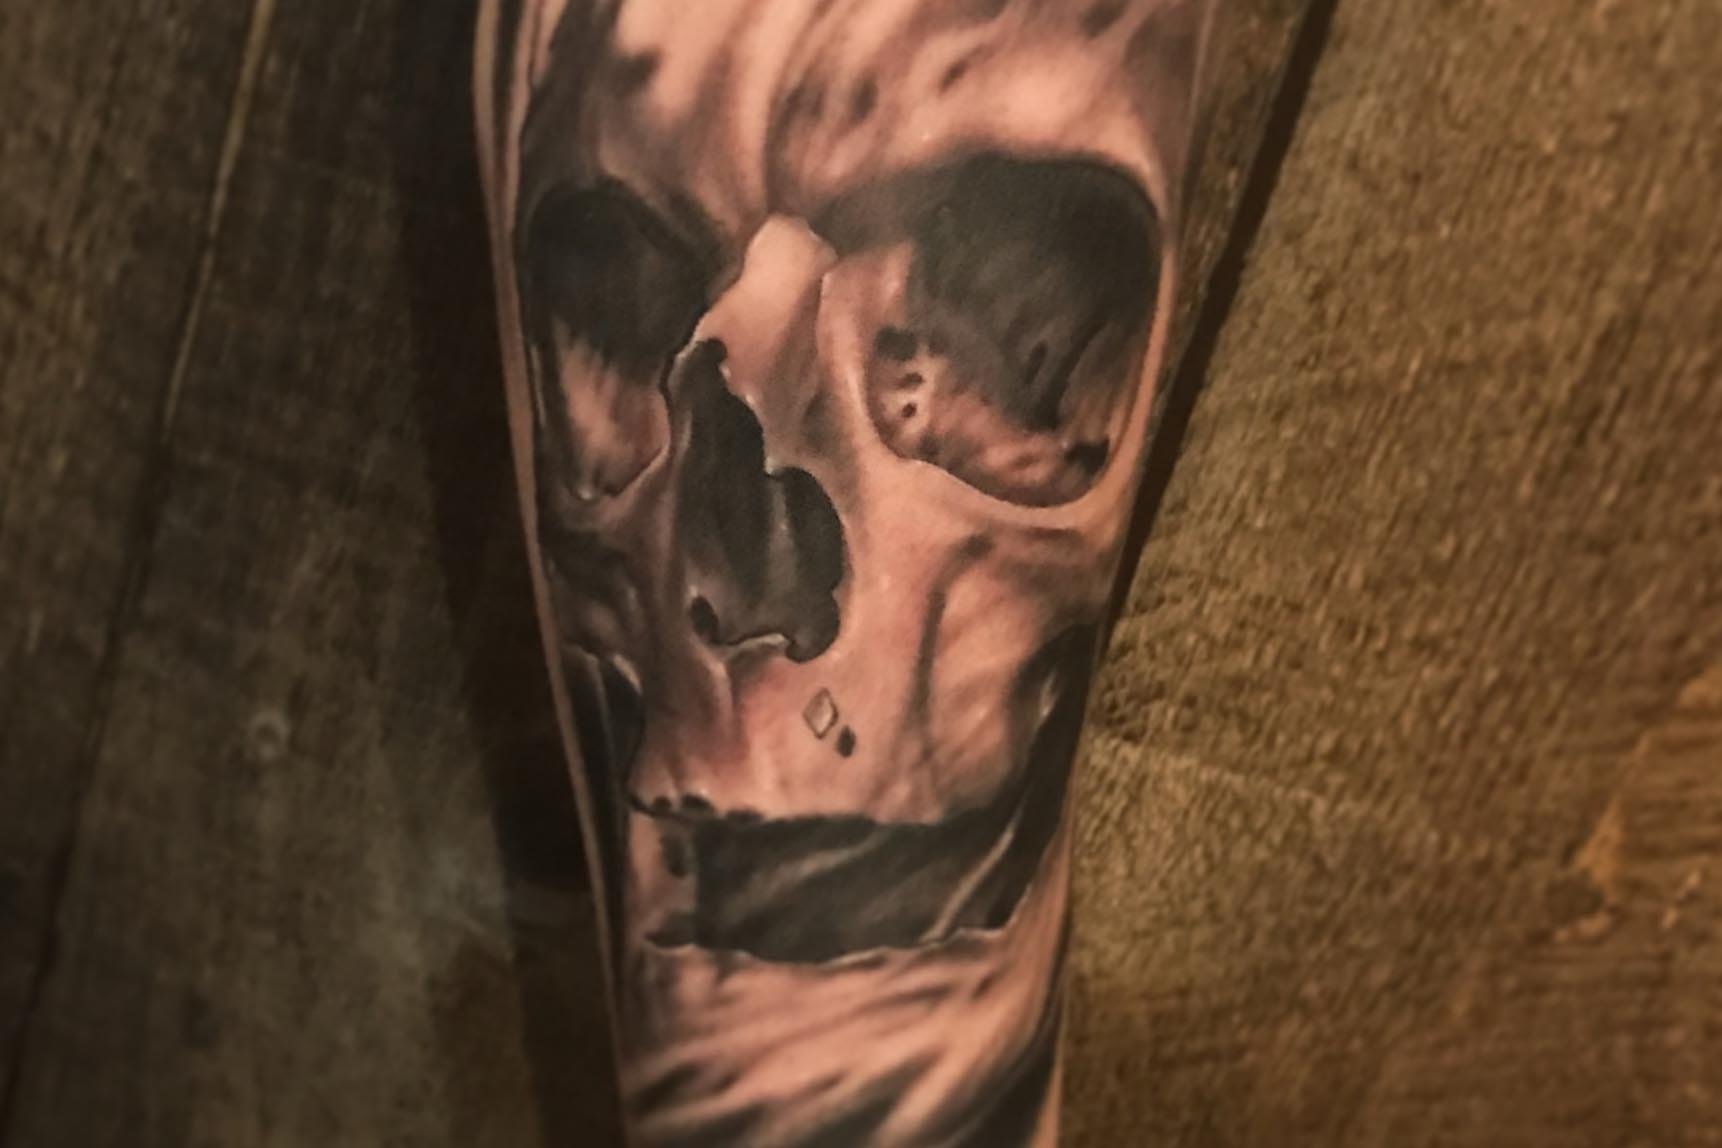 Oly Anger Tattoo Blainville, Tattoo by Oly Anger 6